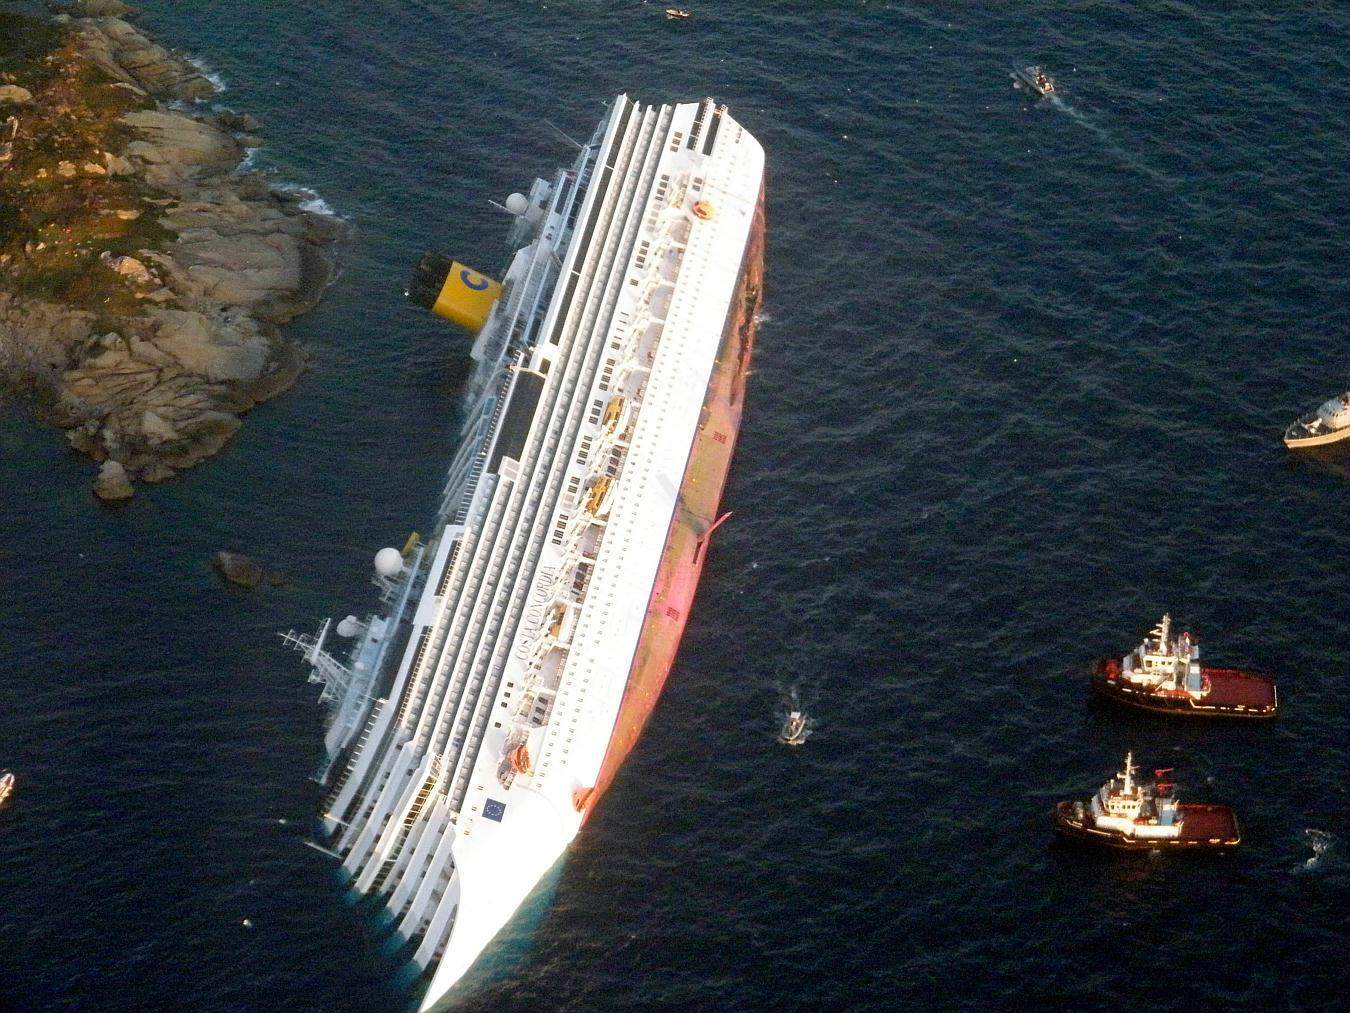 COSTA_CONCORDIA_Grounding_Article_Fortunes_de_Mer-21022012 (4)